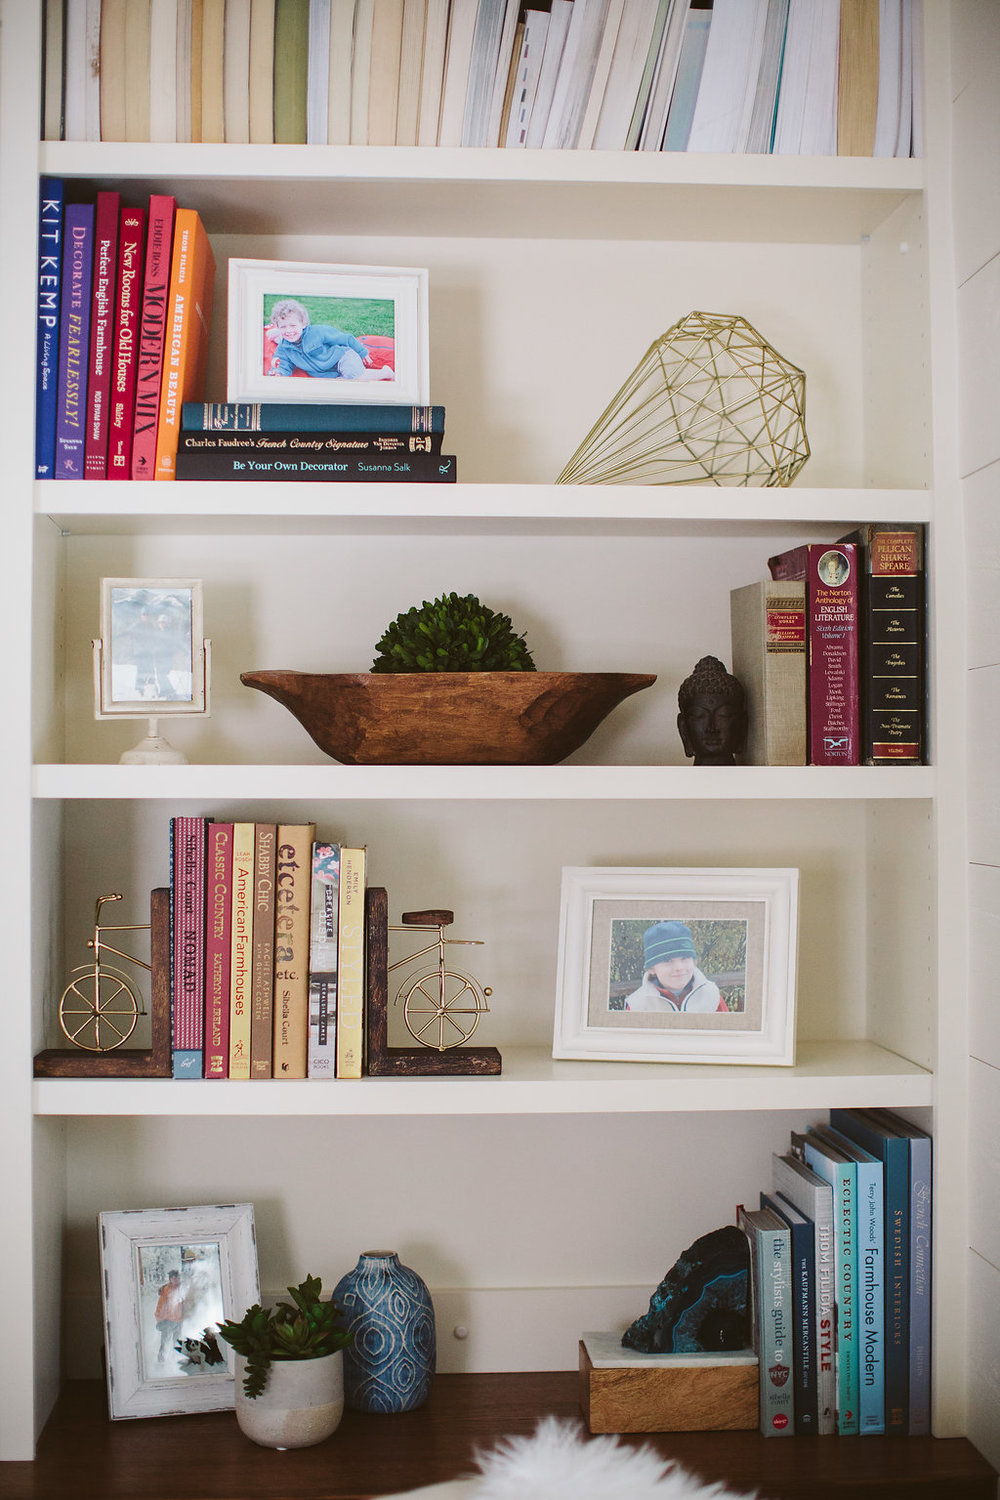 styled-bookshelf-interior-designer-new-york